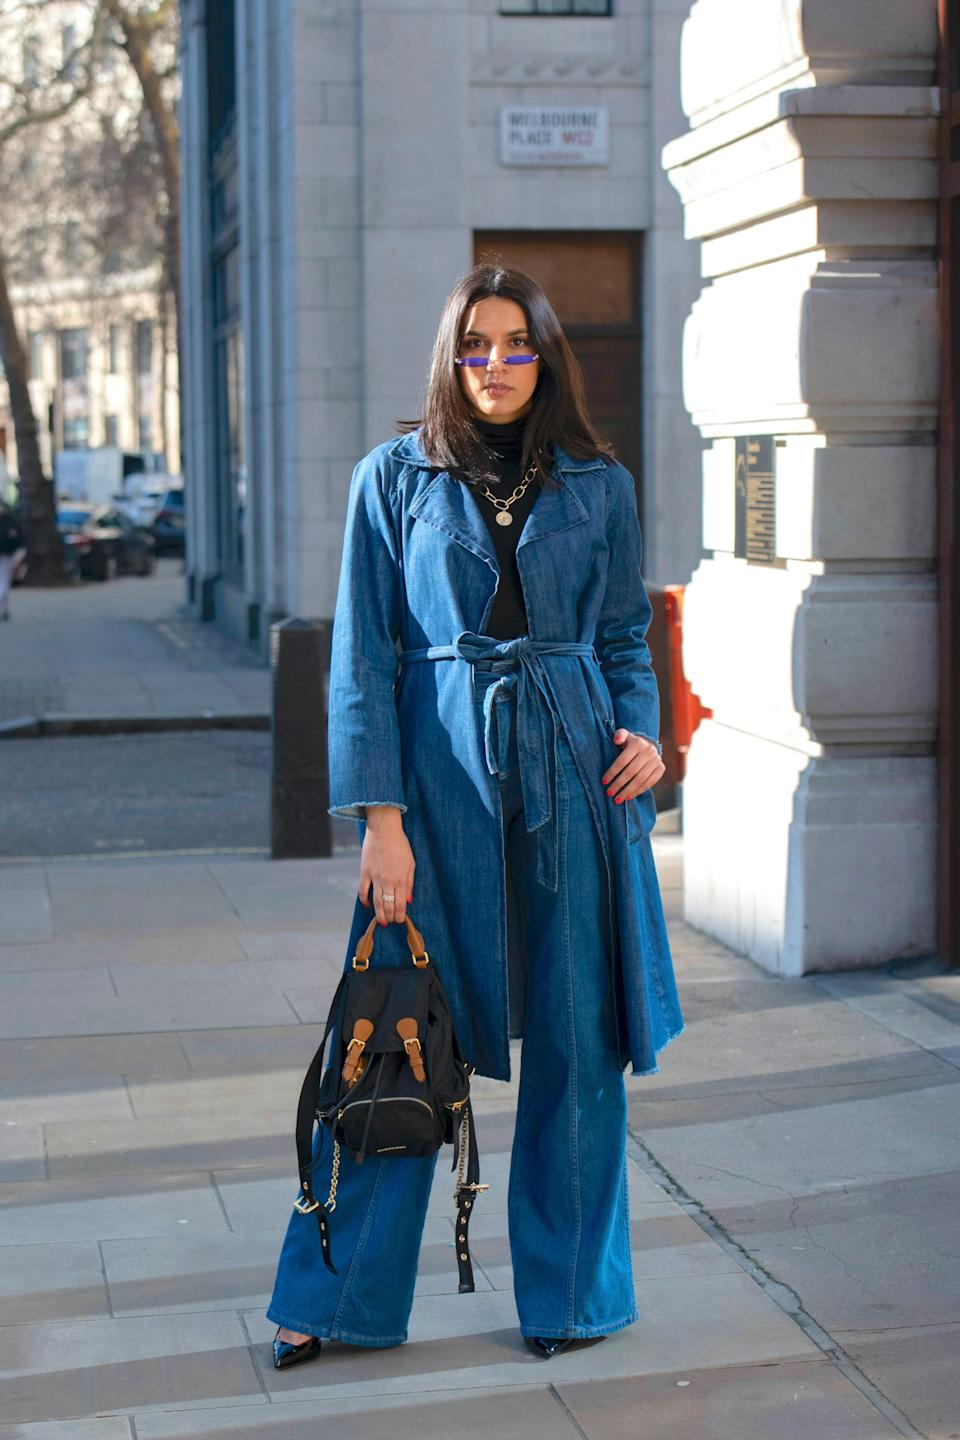 A belted denim trench and wide-leg jeans have a distinct '70s vibe, especially paired with a turtleneck and gold pendant.